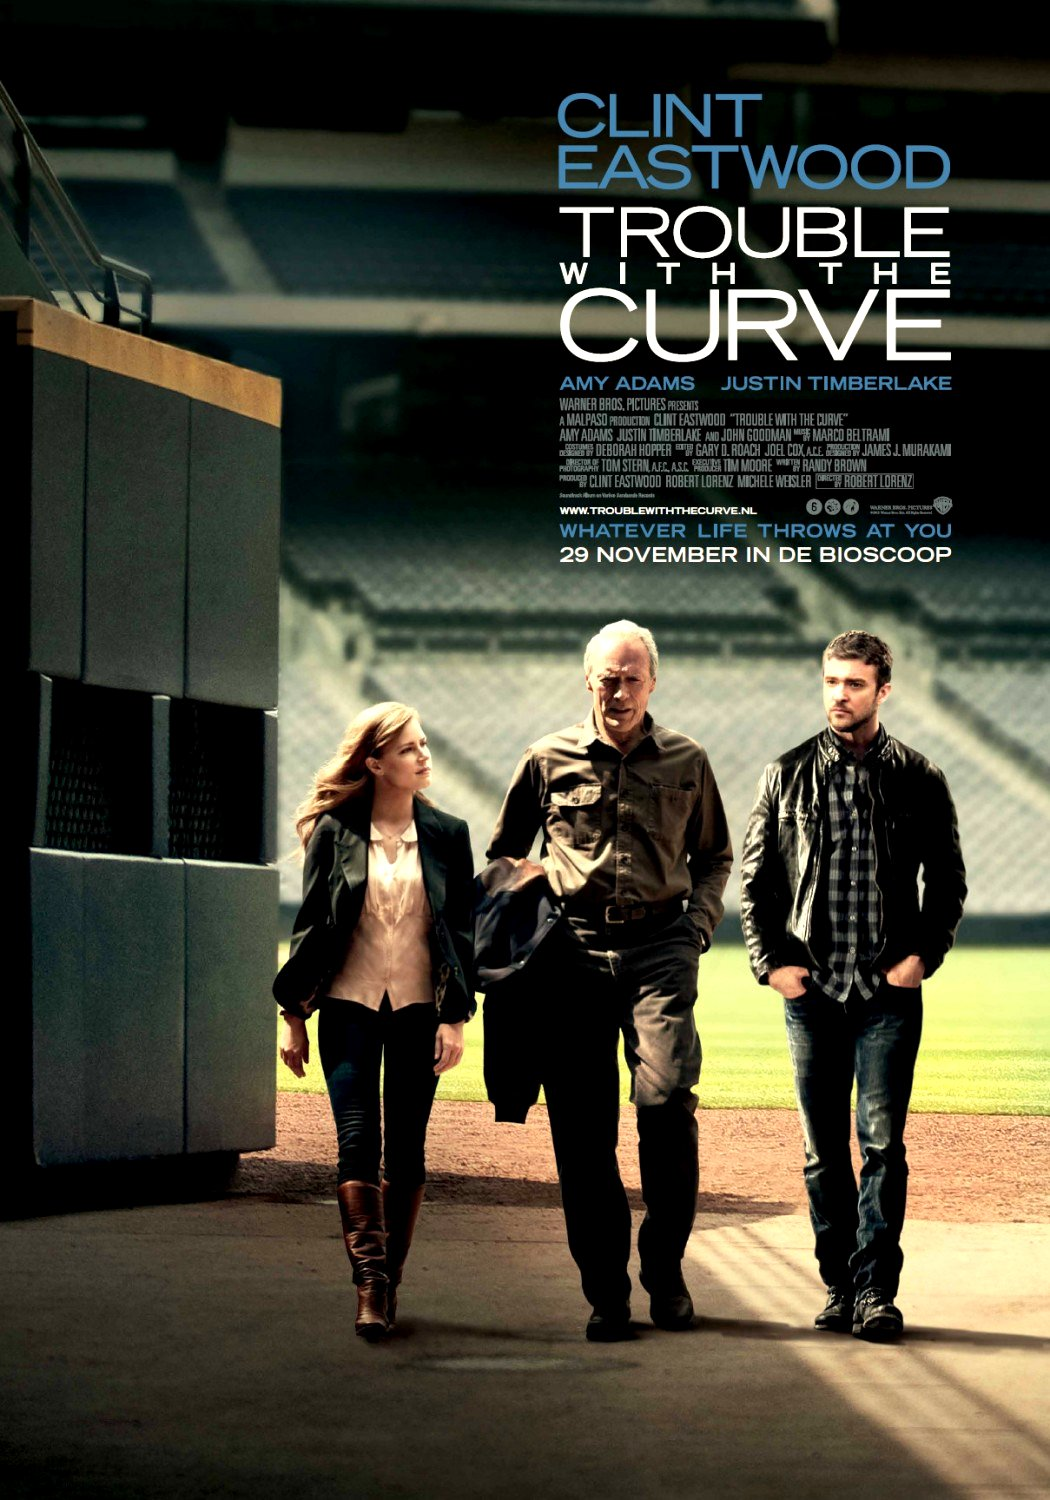 Trouble with the Curve (2012)Movie Poster Google image from http://www.upcoming-movies.com/posters/2012/september/trouble-with-the-curve-movie-poster-3.jpg